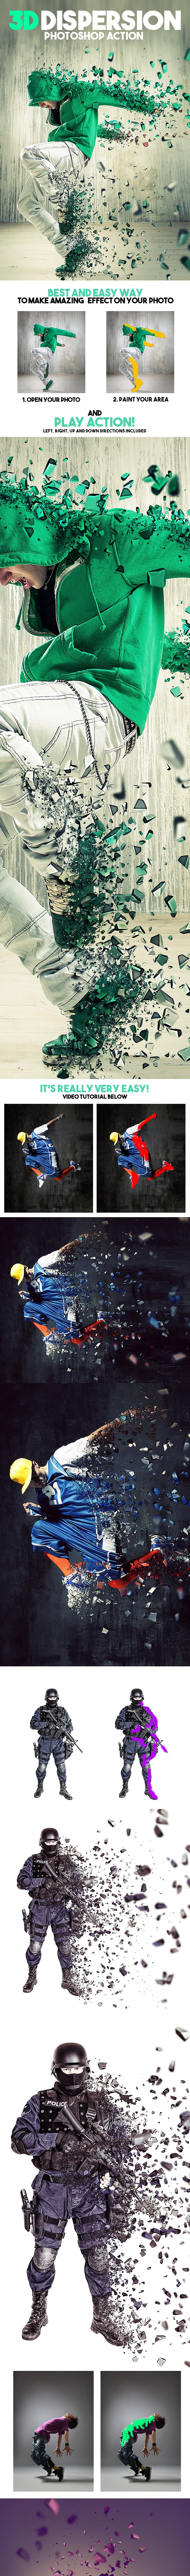 3D Dispersion Photoshop Action - Photo Effects Actions